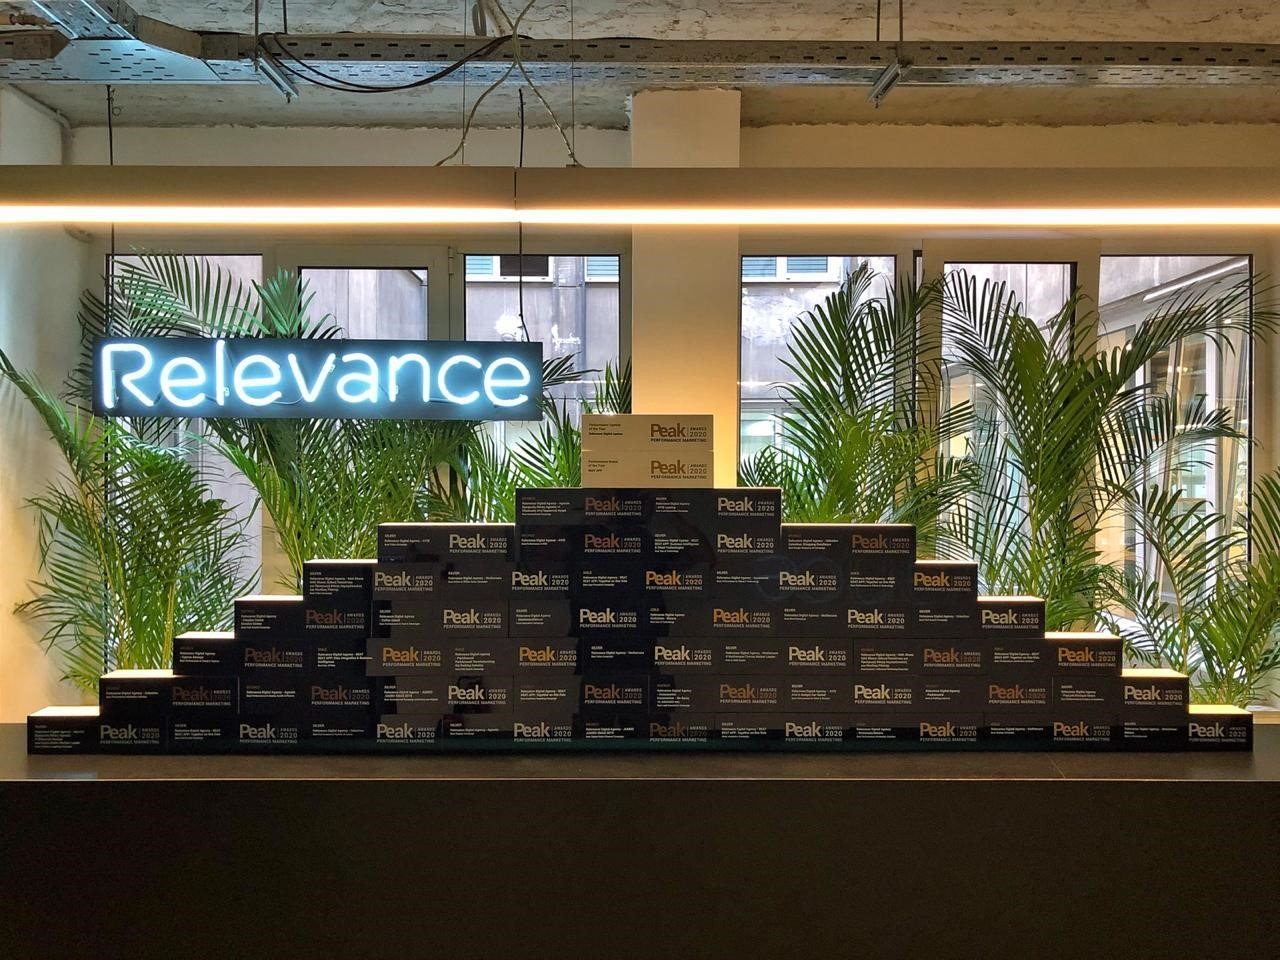 ''Peak Awards 2020, Relevance has received 41 Performance Marketing Awards''